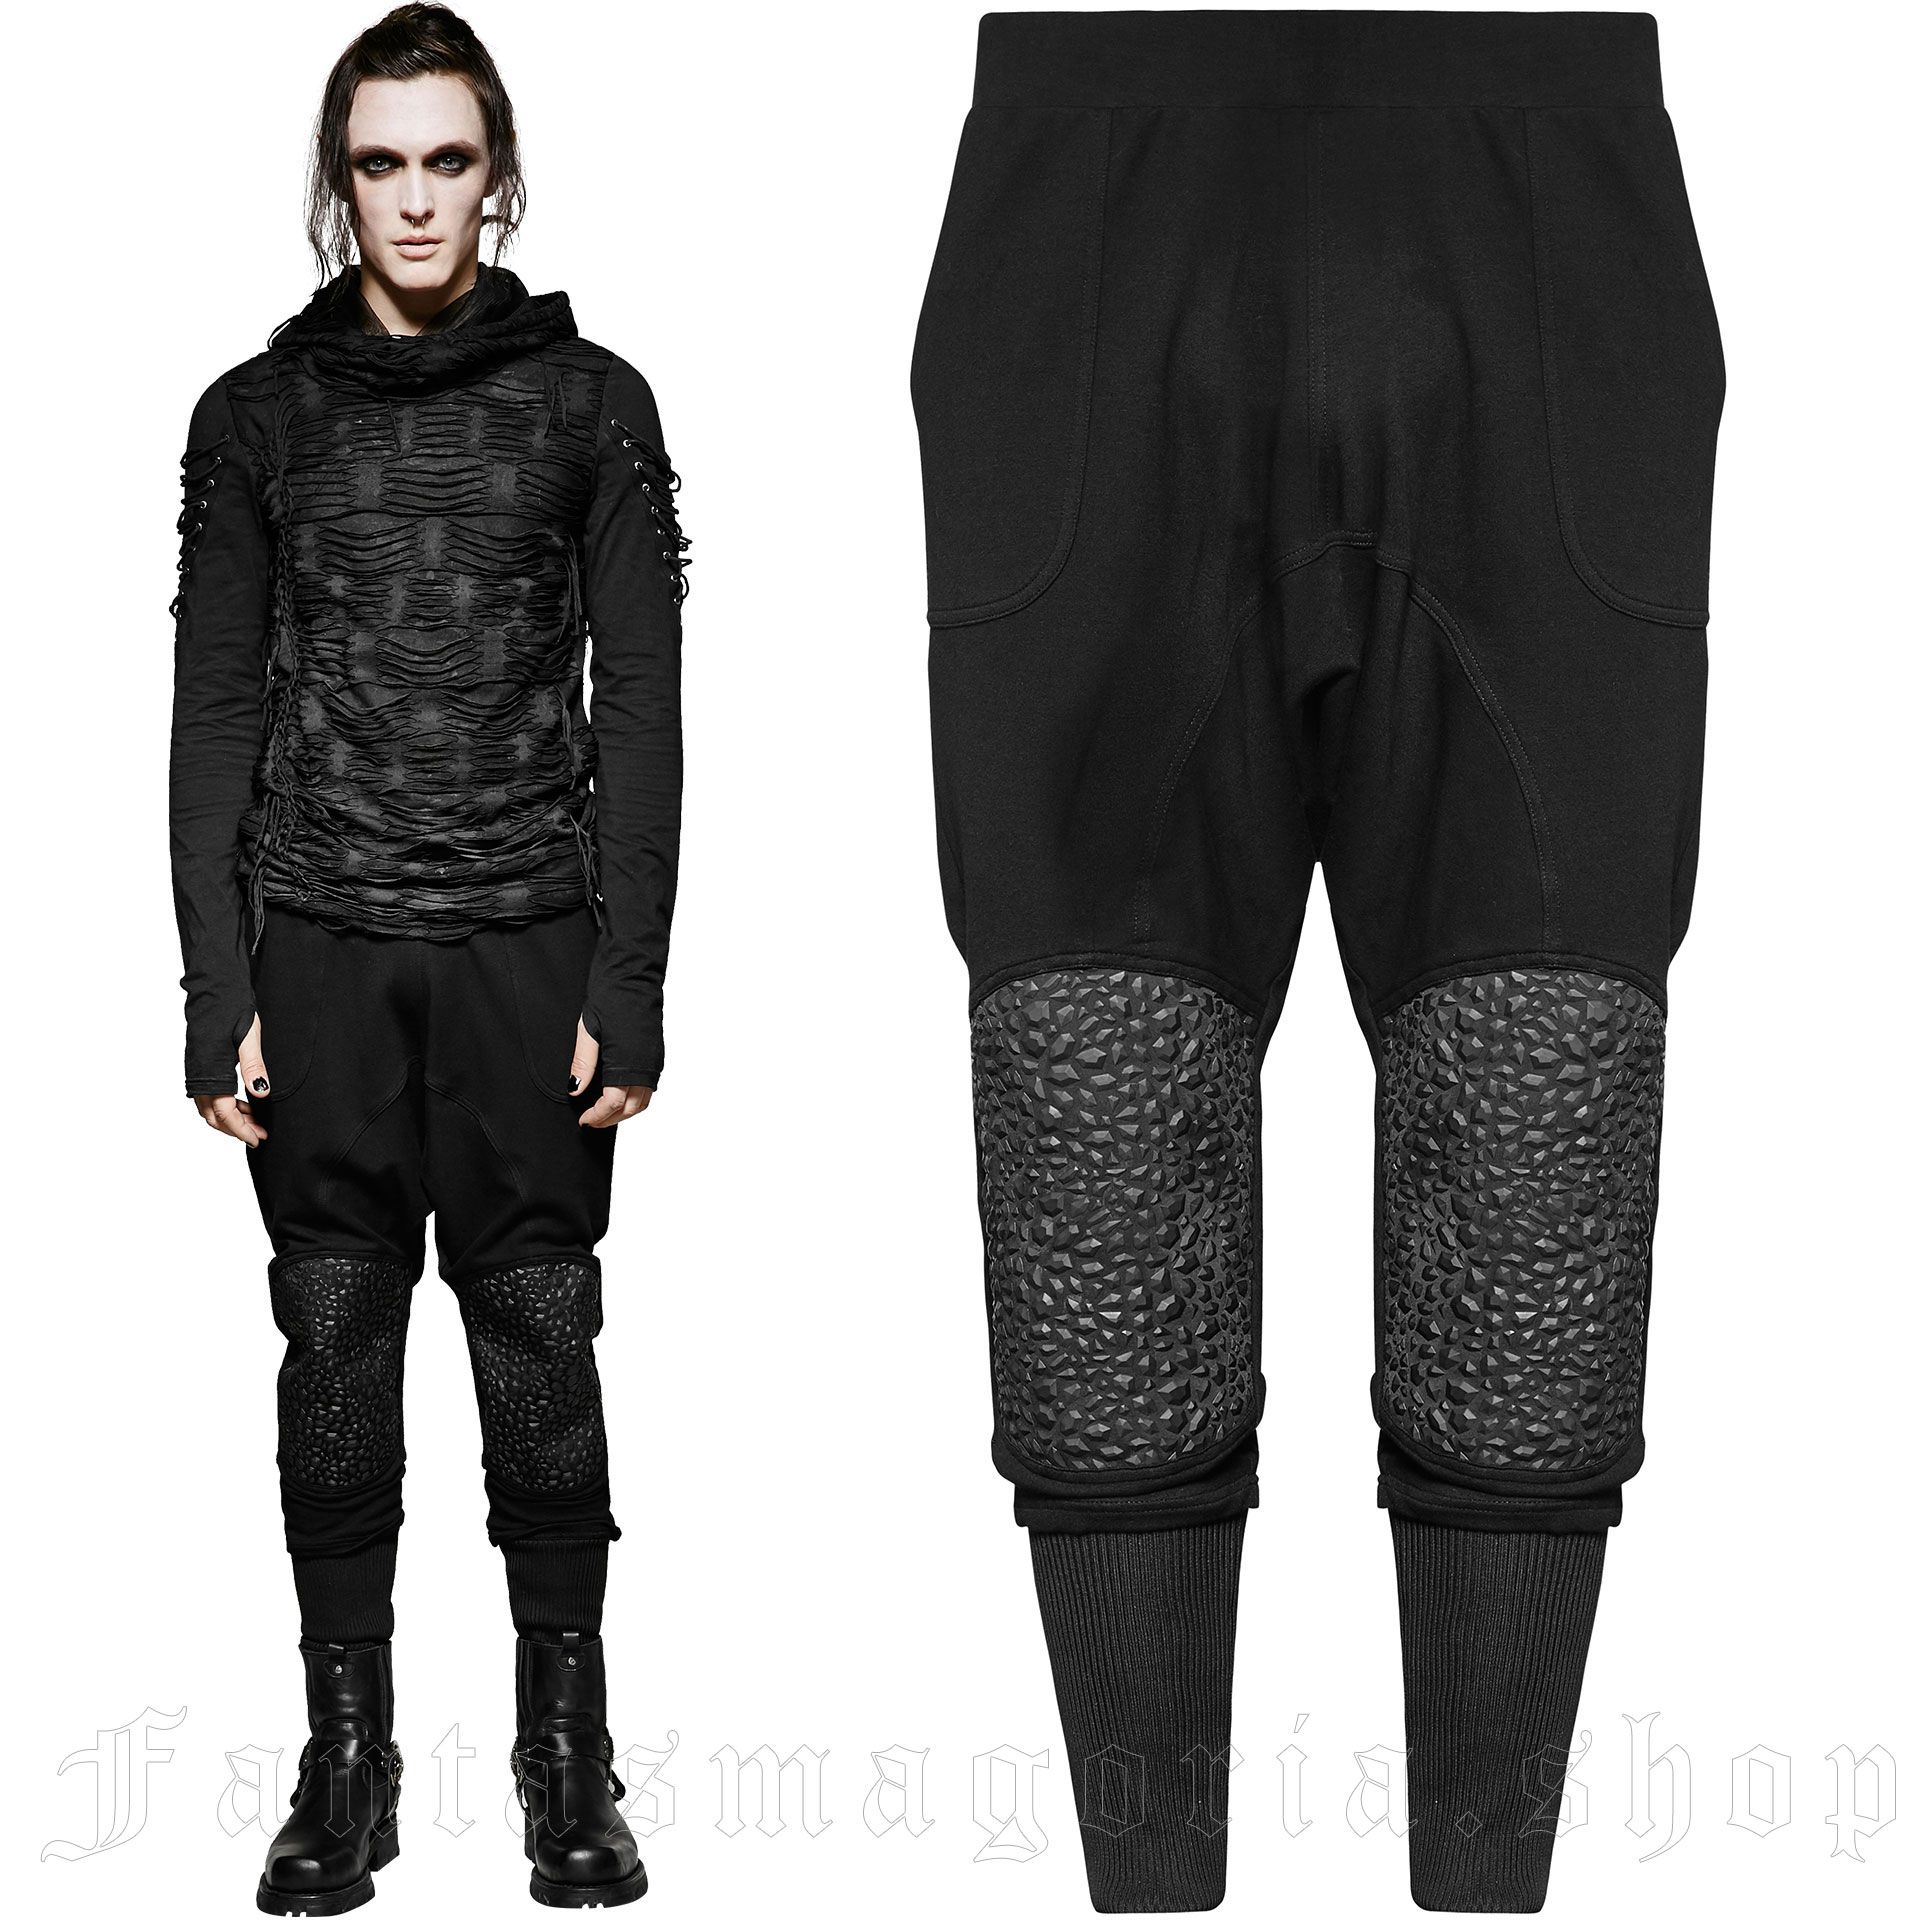 men's Black Martyr Trousers by PUNK RAVE brand, code: K-267